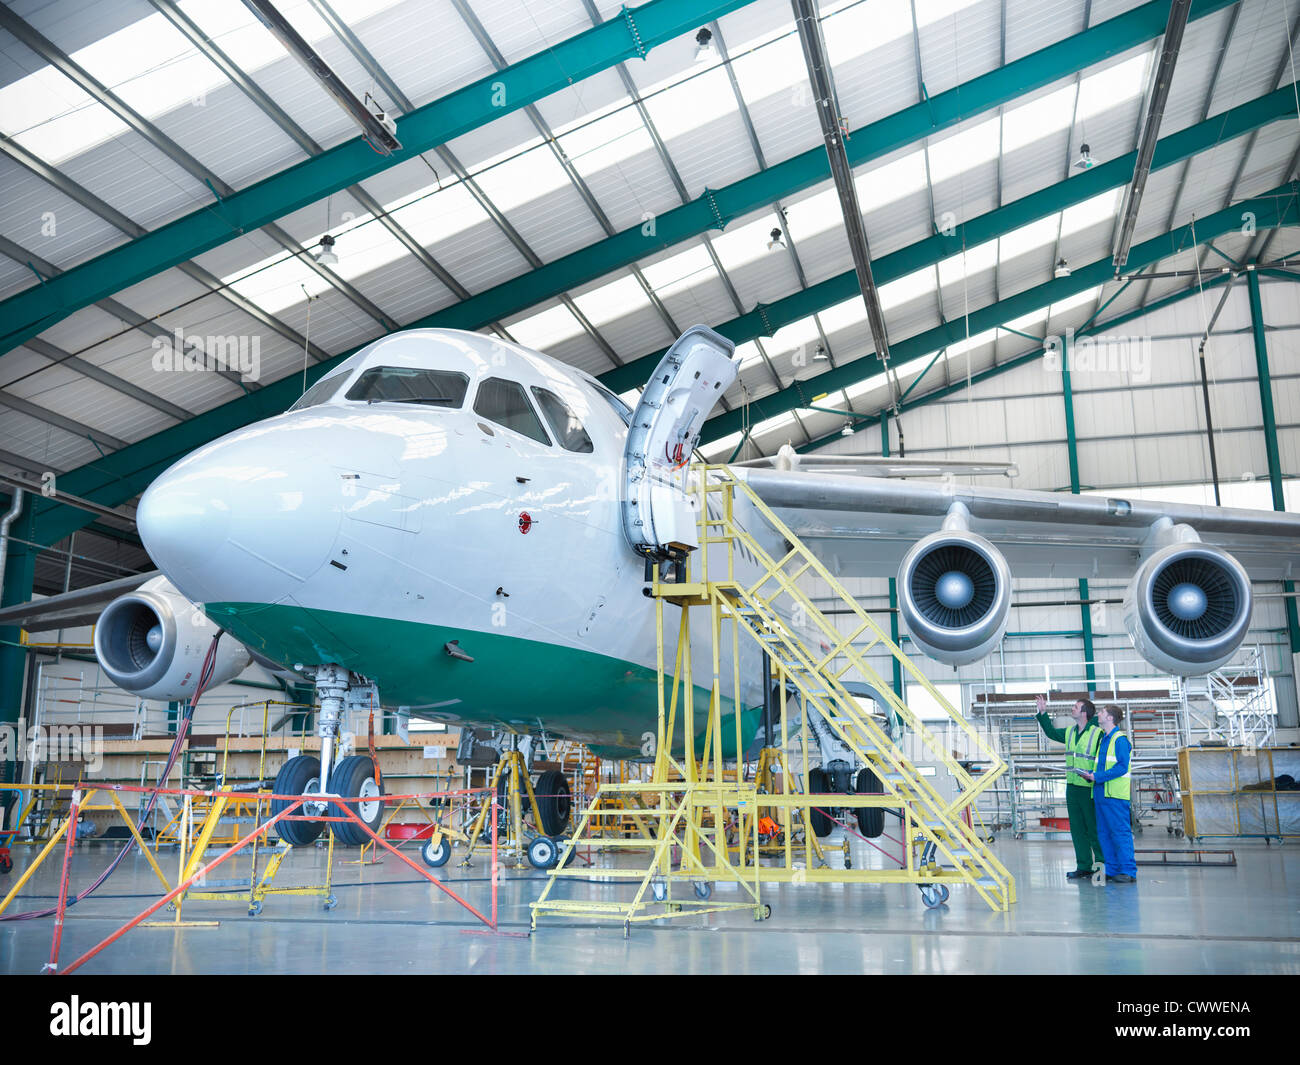 Workers inspecting jet aircraft in hangar - Stock Image